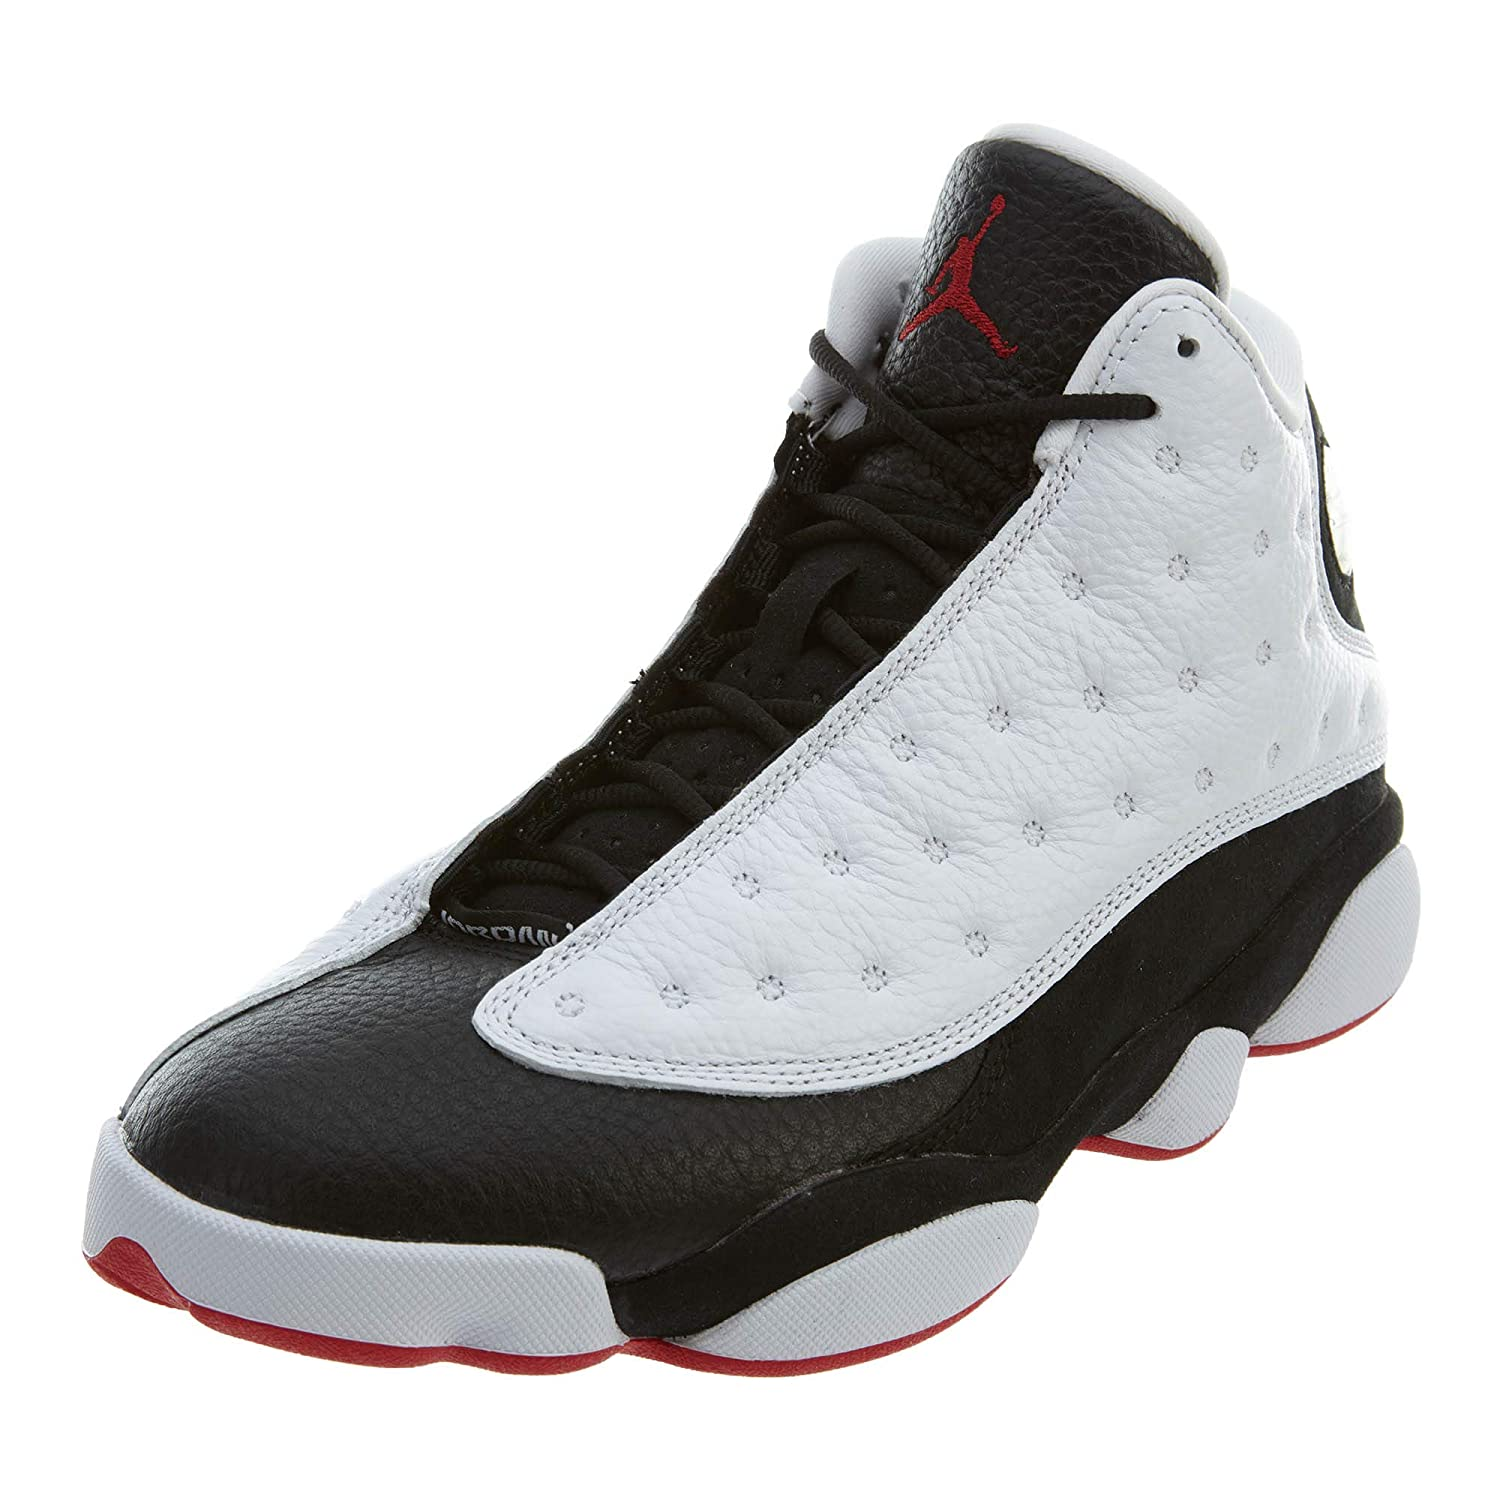 buy popular 10321 b1228 NIKE Air Jordan 13 Retro He Got Game Men's Shoes White/True red/Black  414571-104 (10.5 D(M) US)